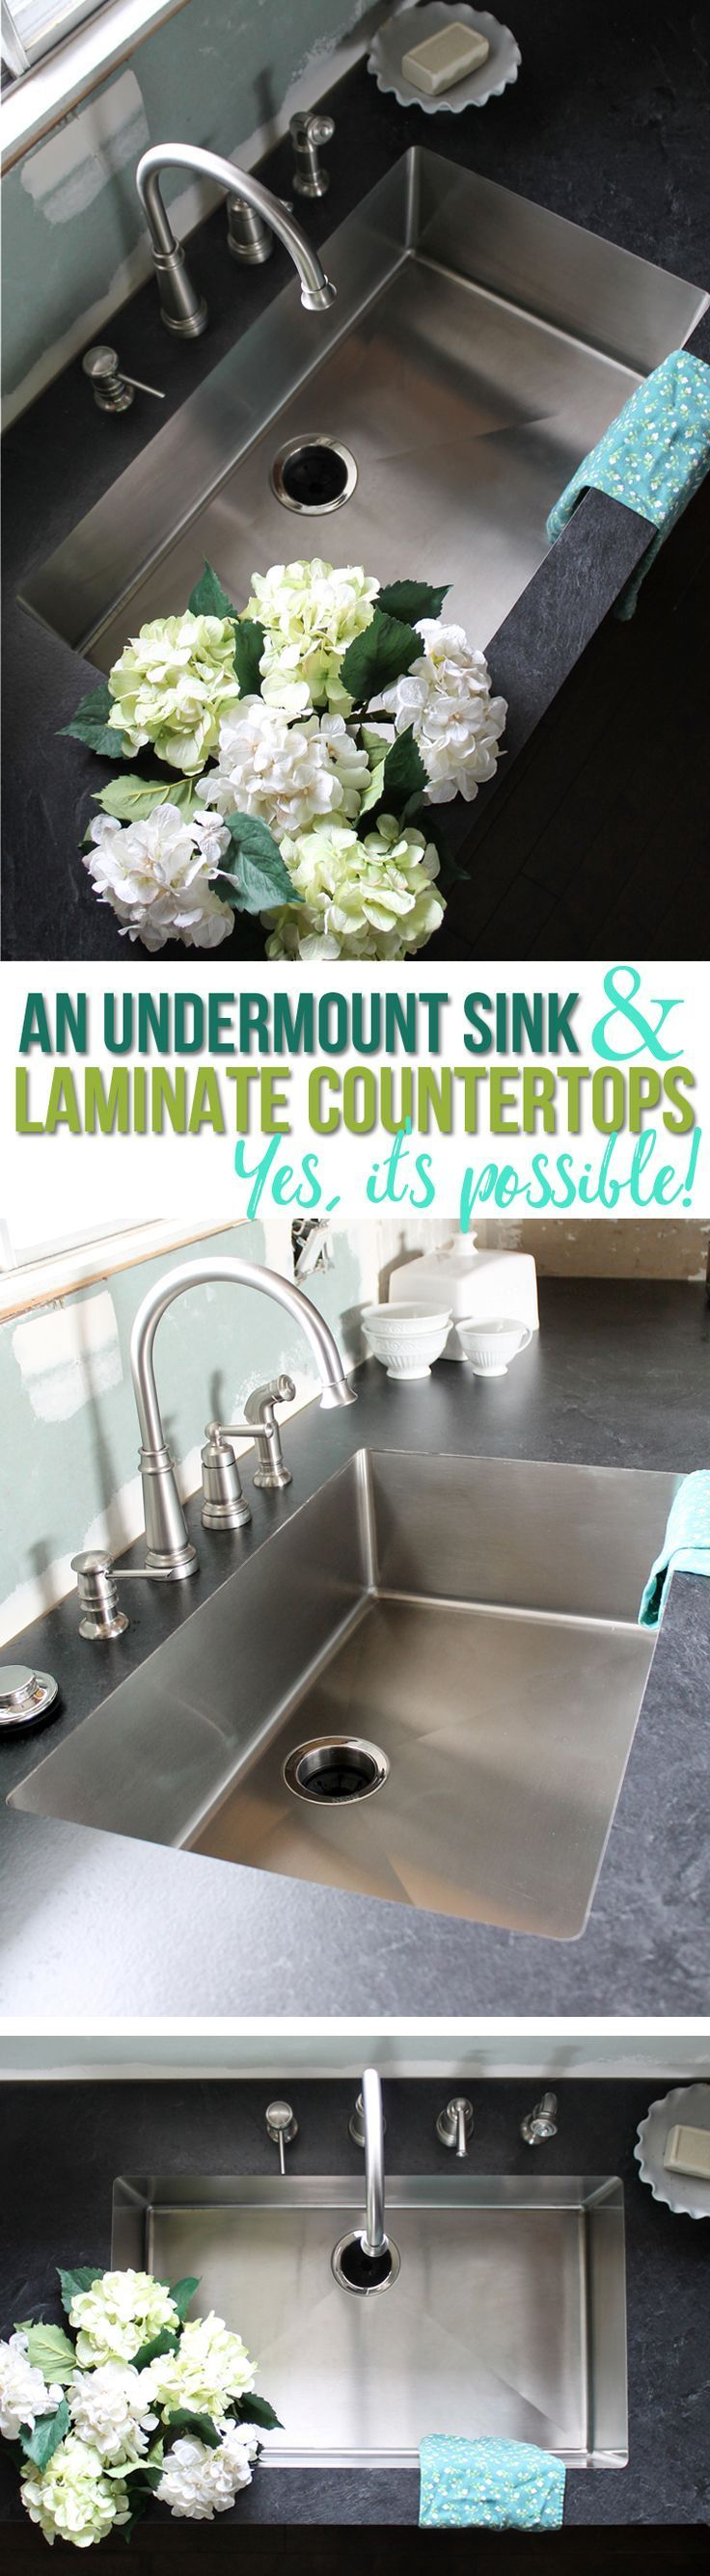 An undermount sink in laminate countertops pinterest laminate yes you can have an undermount kitchen sink with laminate countertops this awesome sink is specially made to be installed seamlessly with laminate solutioingenieria Gallery